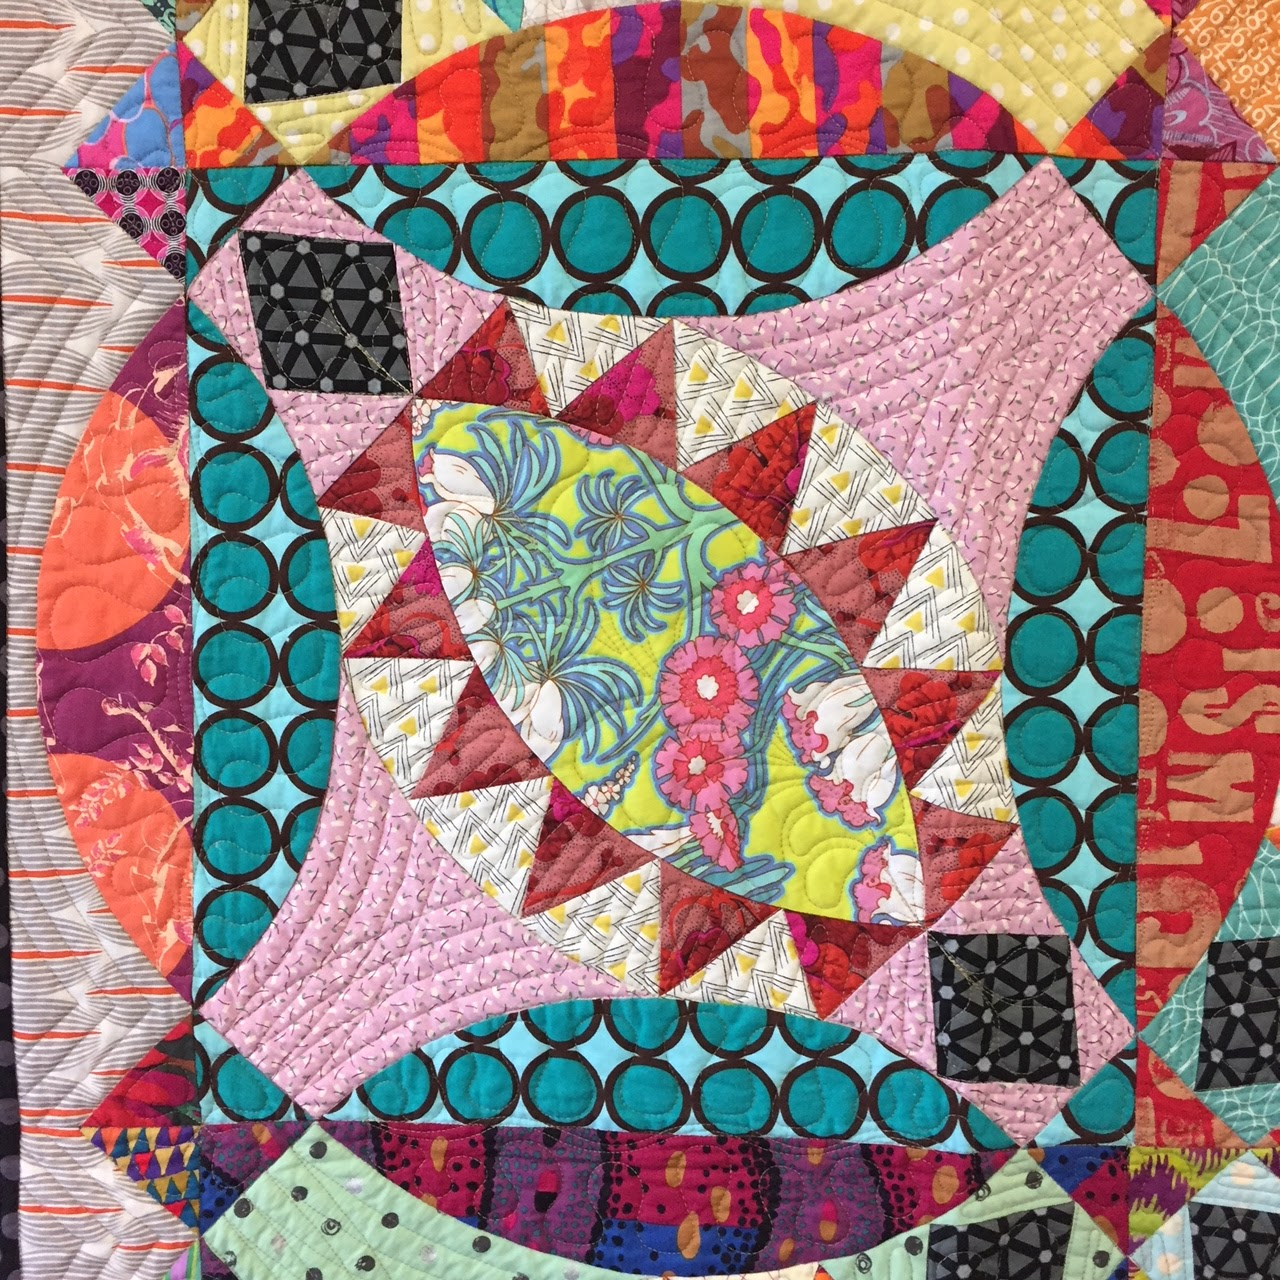 up a and change think fish is daly colors i could both boys but well suit it quilts girls size works the for sea quilt to twin img you may under jen x